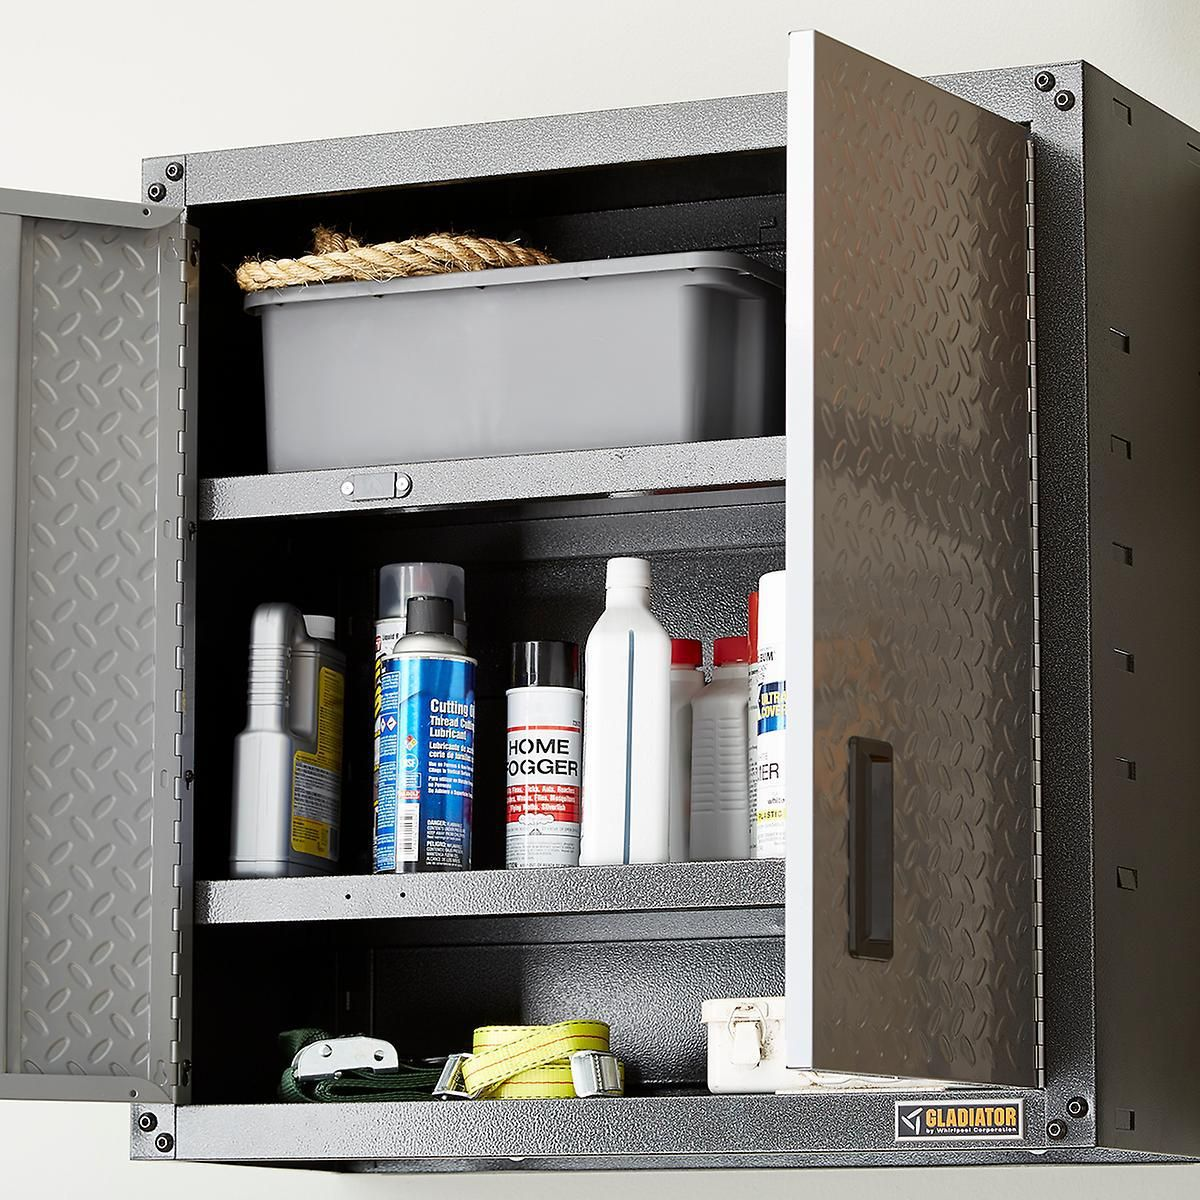 Gladiator Wall Mounted Gearboxes Are Perfect For Automotive Supply Storage With Images Shelving Solutions Door Wall